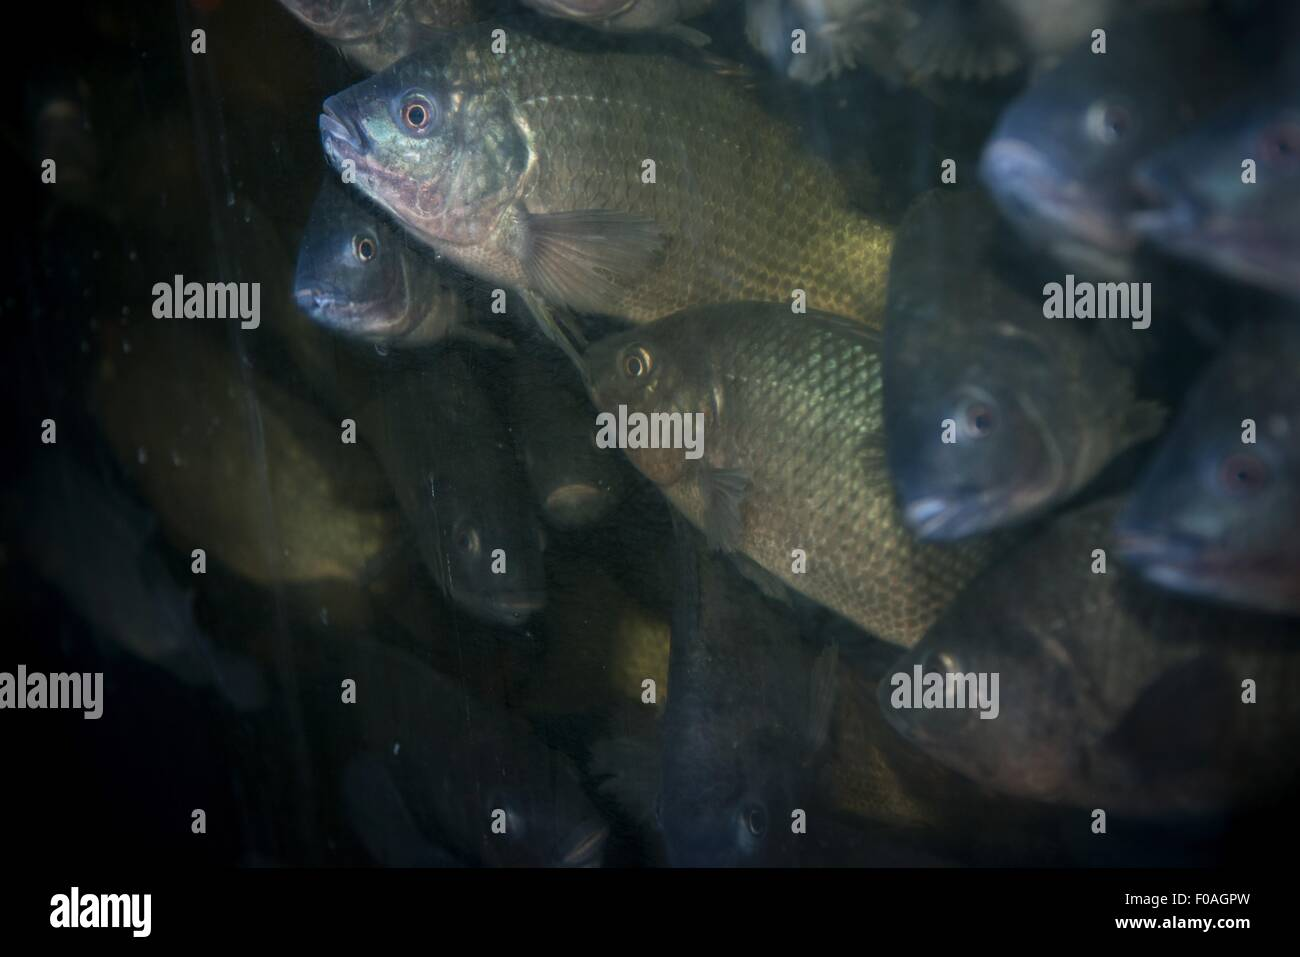 Close-up of carp fishes in Efficient City Farming, Schoneberg, Berlin, Germany - Stock Image